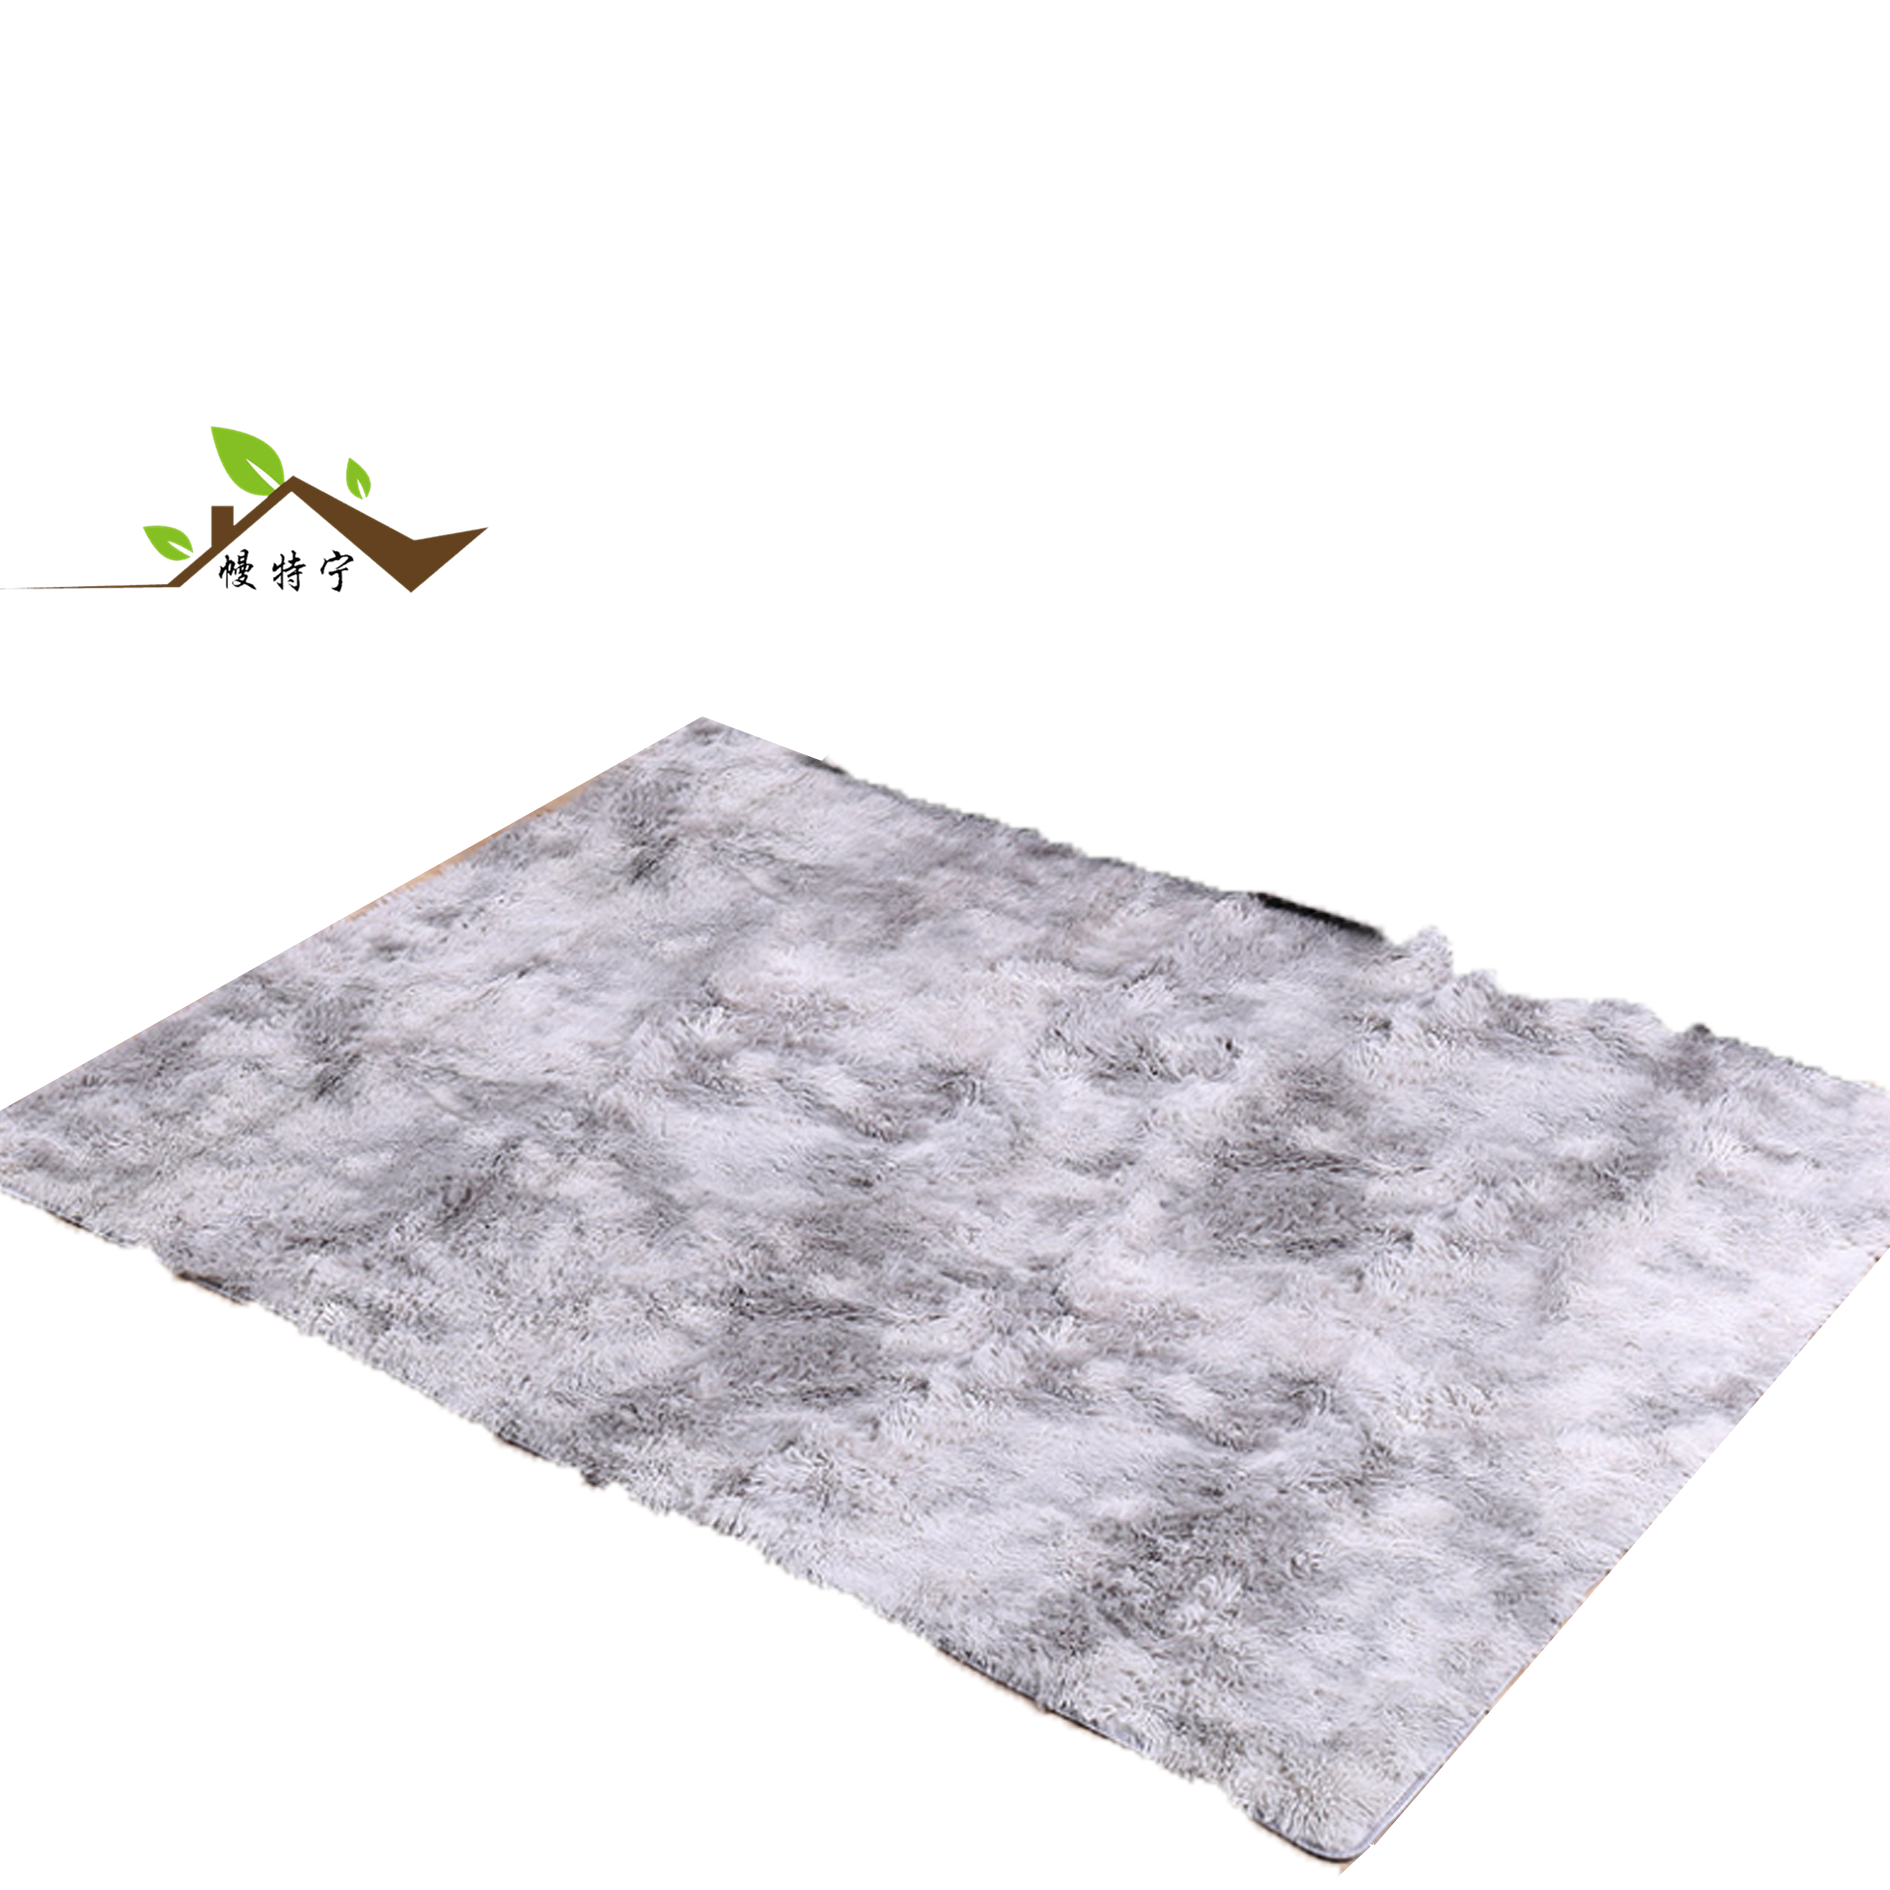 Wholesale Block Geometric Carpet Large Size Living Room Bedroom Tea Table area Rugs In faux sheepskin fur rug carpet